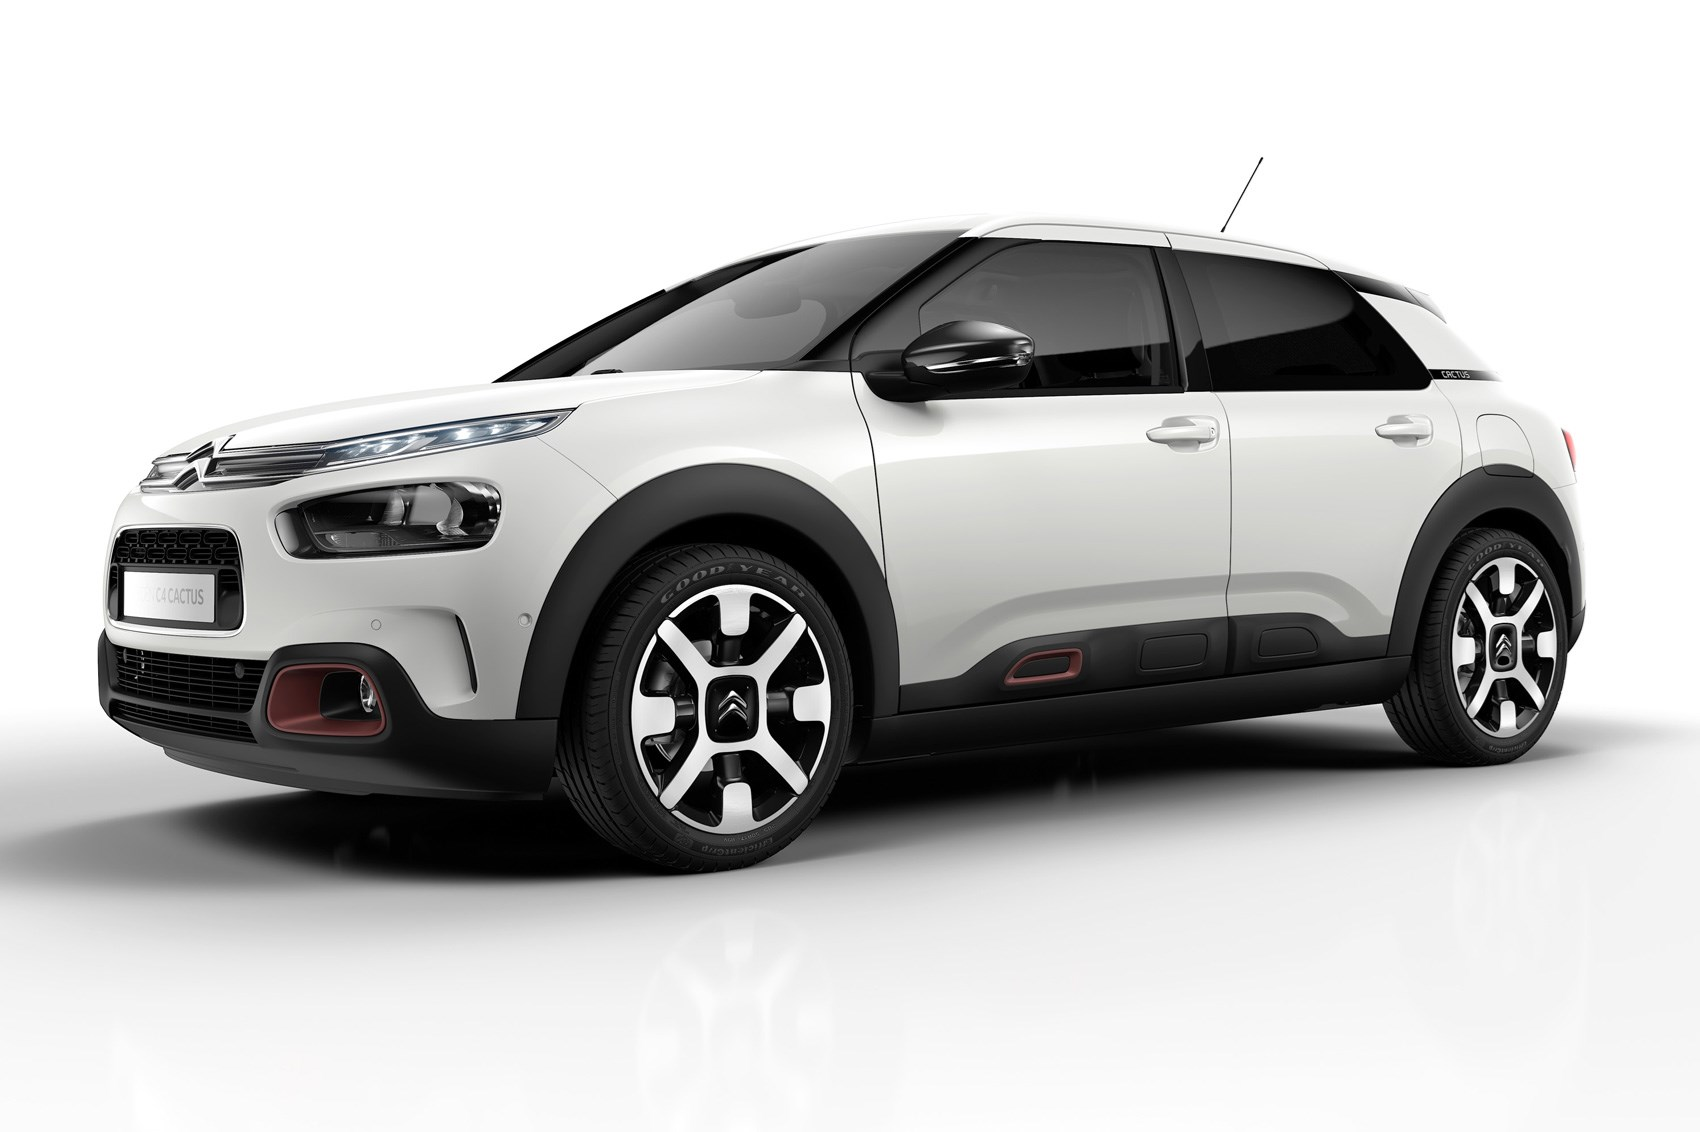 Citroen C4 Cactus >> Citroen C4 Cactus facelifted: Airbumps out, comfier ride in | CAR Magazine